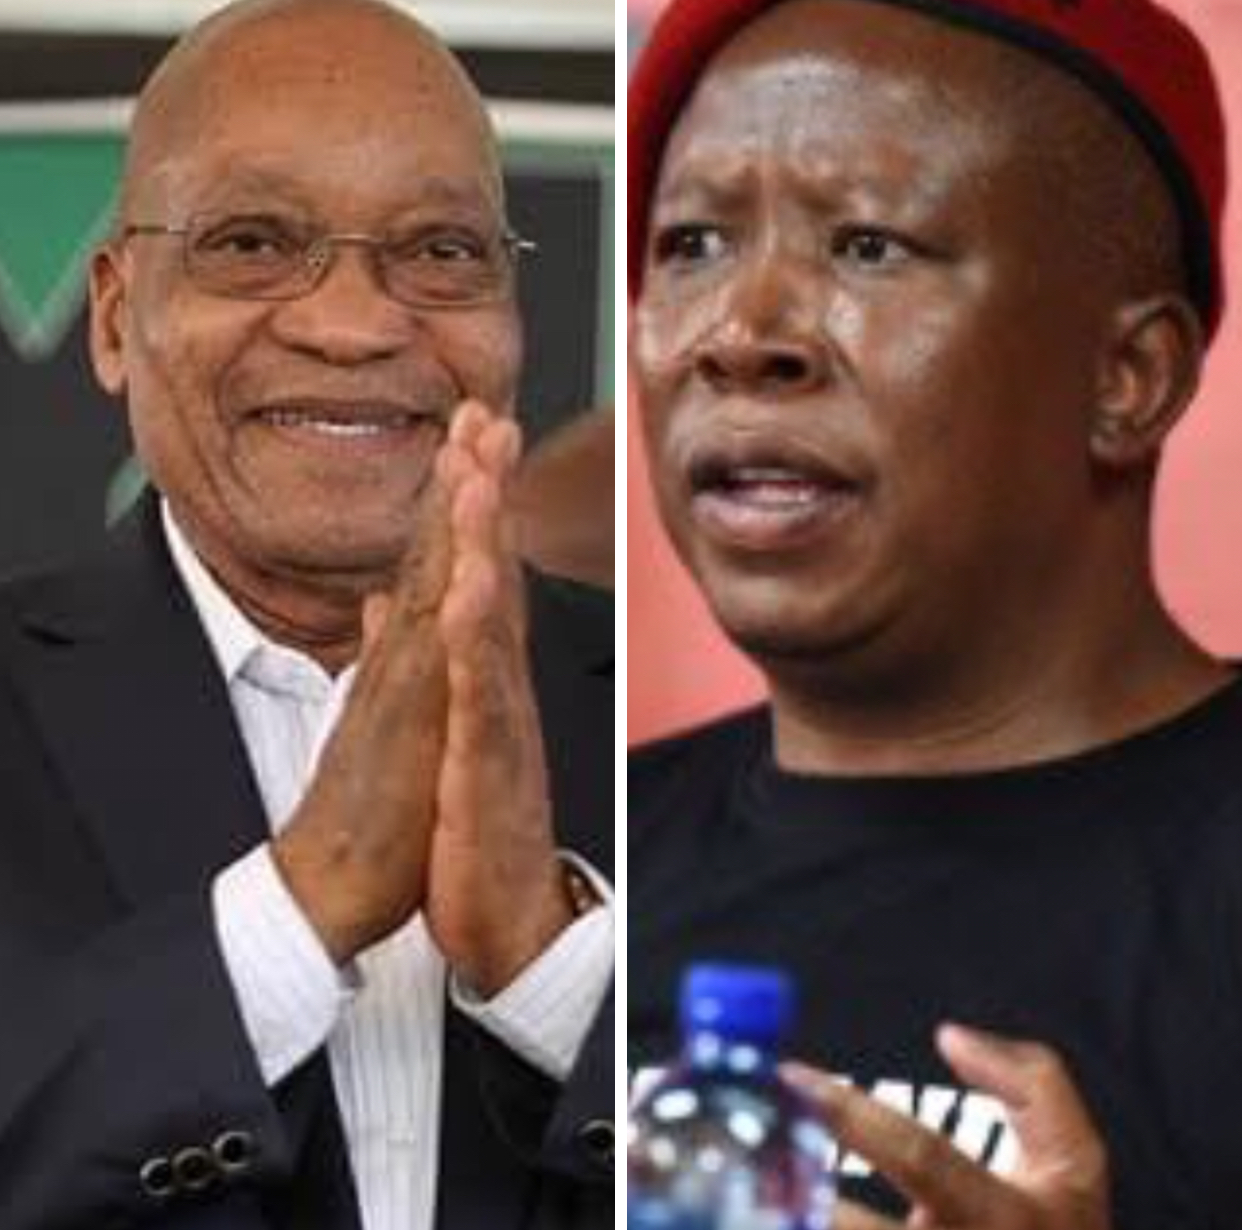 EFF leader Julius Malema to meet former President Jacob Zuma for a cup of tea at Nkandla